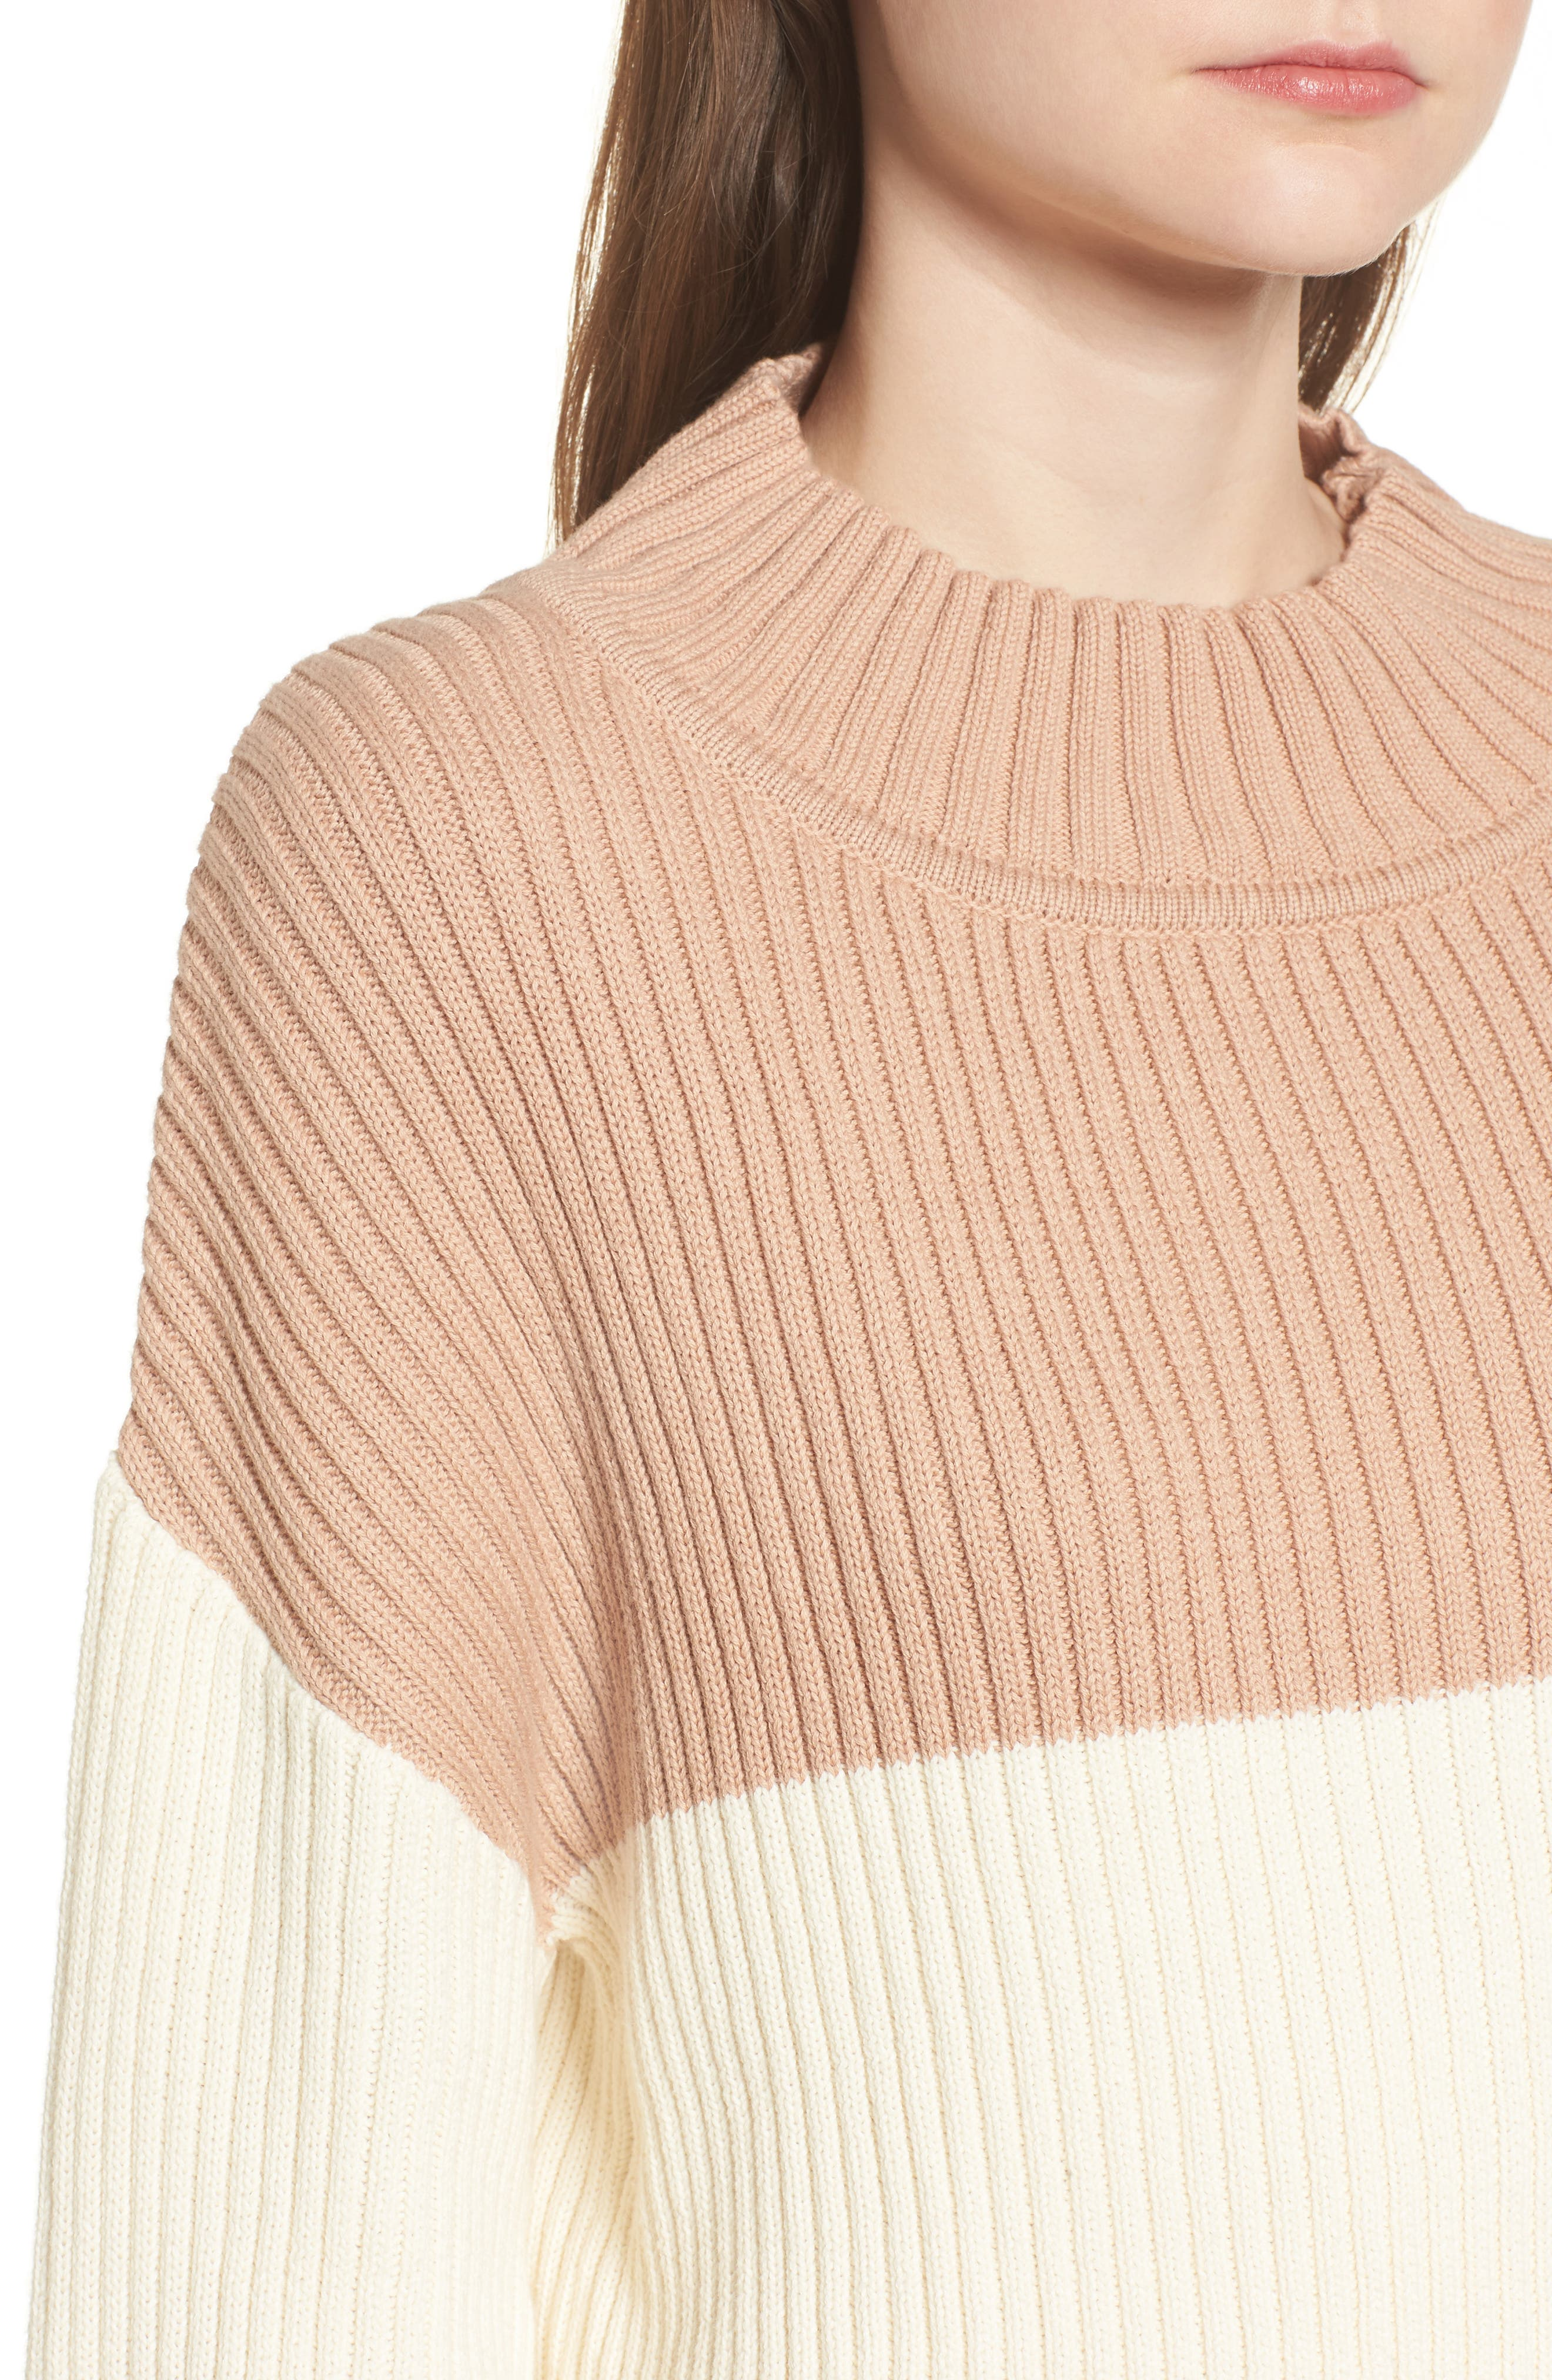 Like a Melody Colorblock Crop Sweater,                             Alternate thumbnail 4, color,                             900